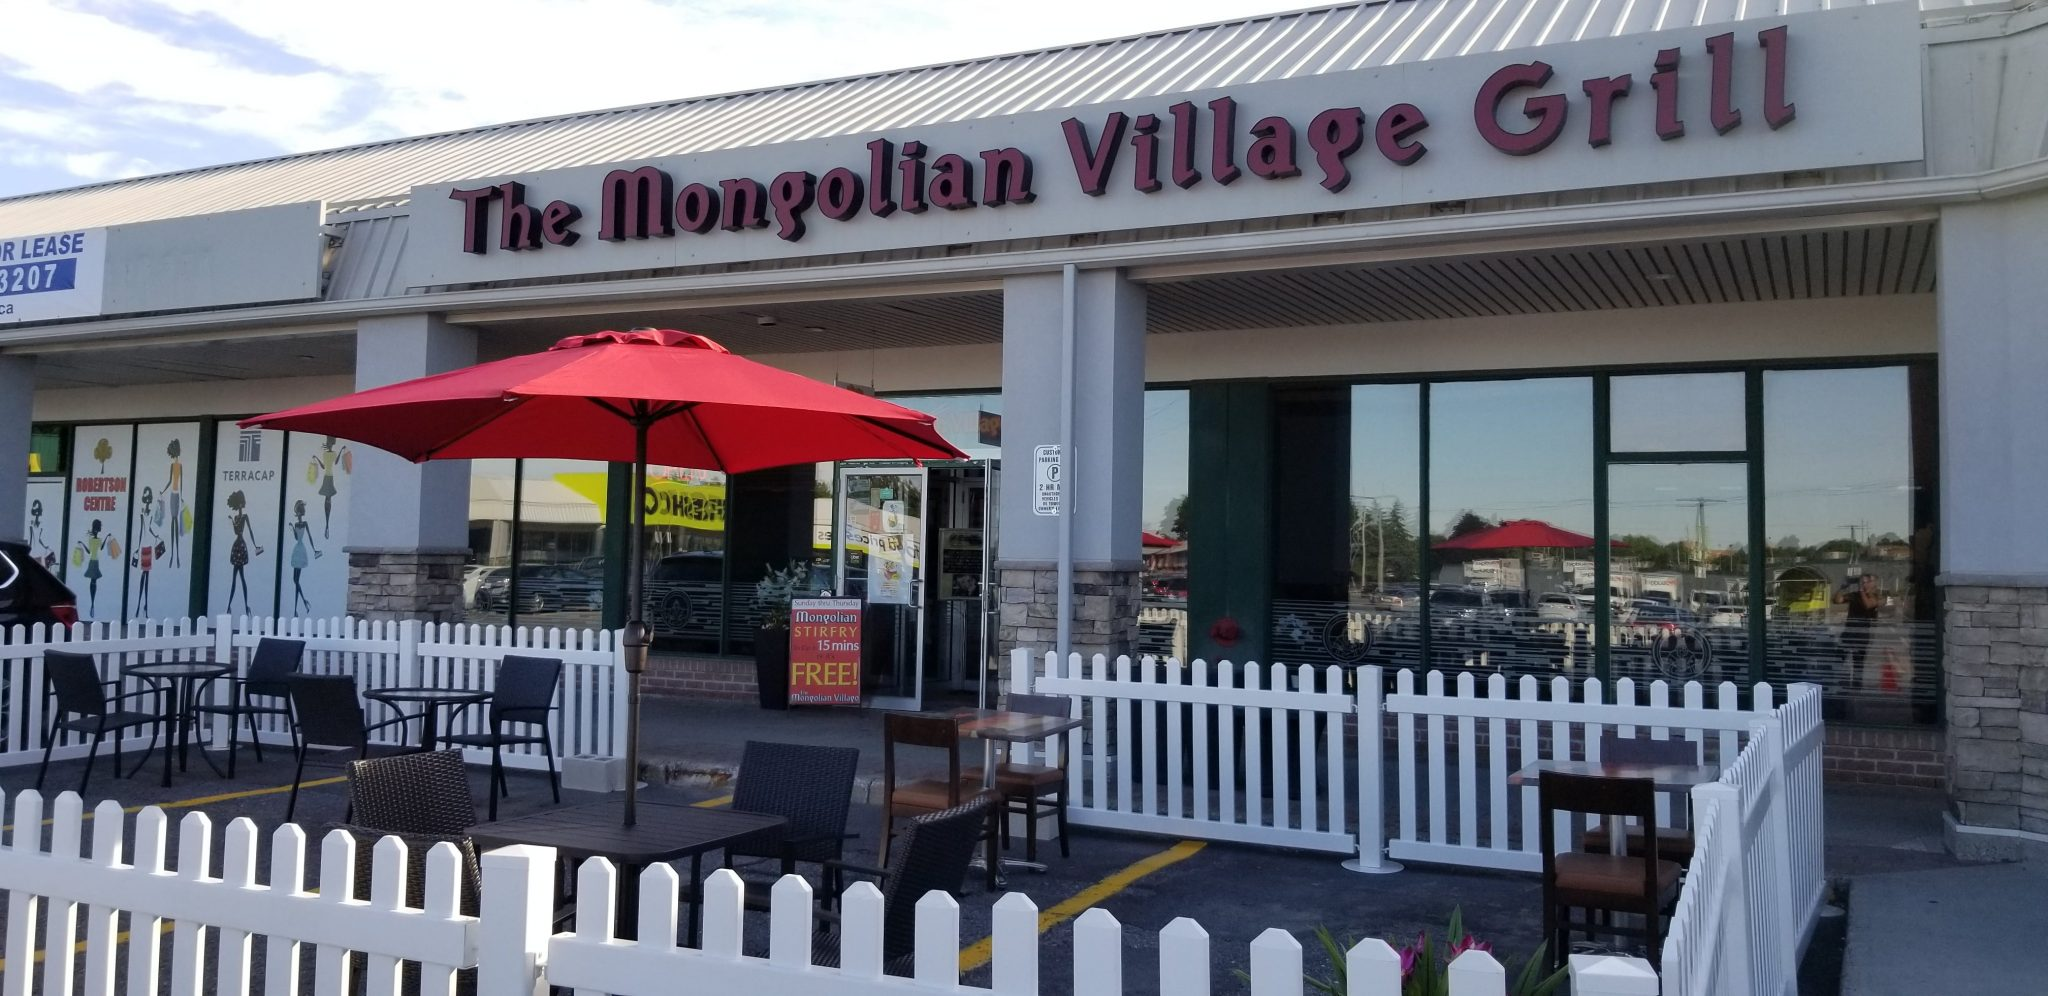 Exteirior photo of Mongolian Village Grill West